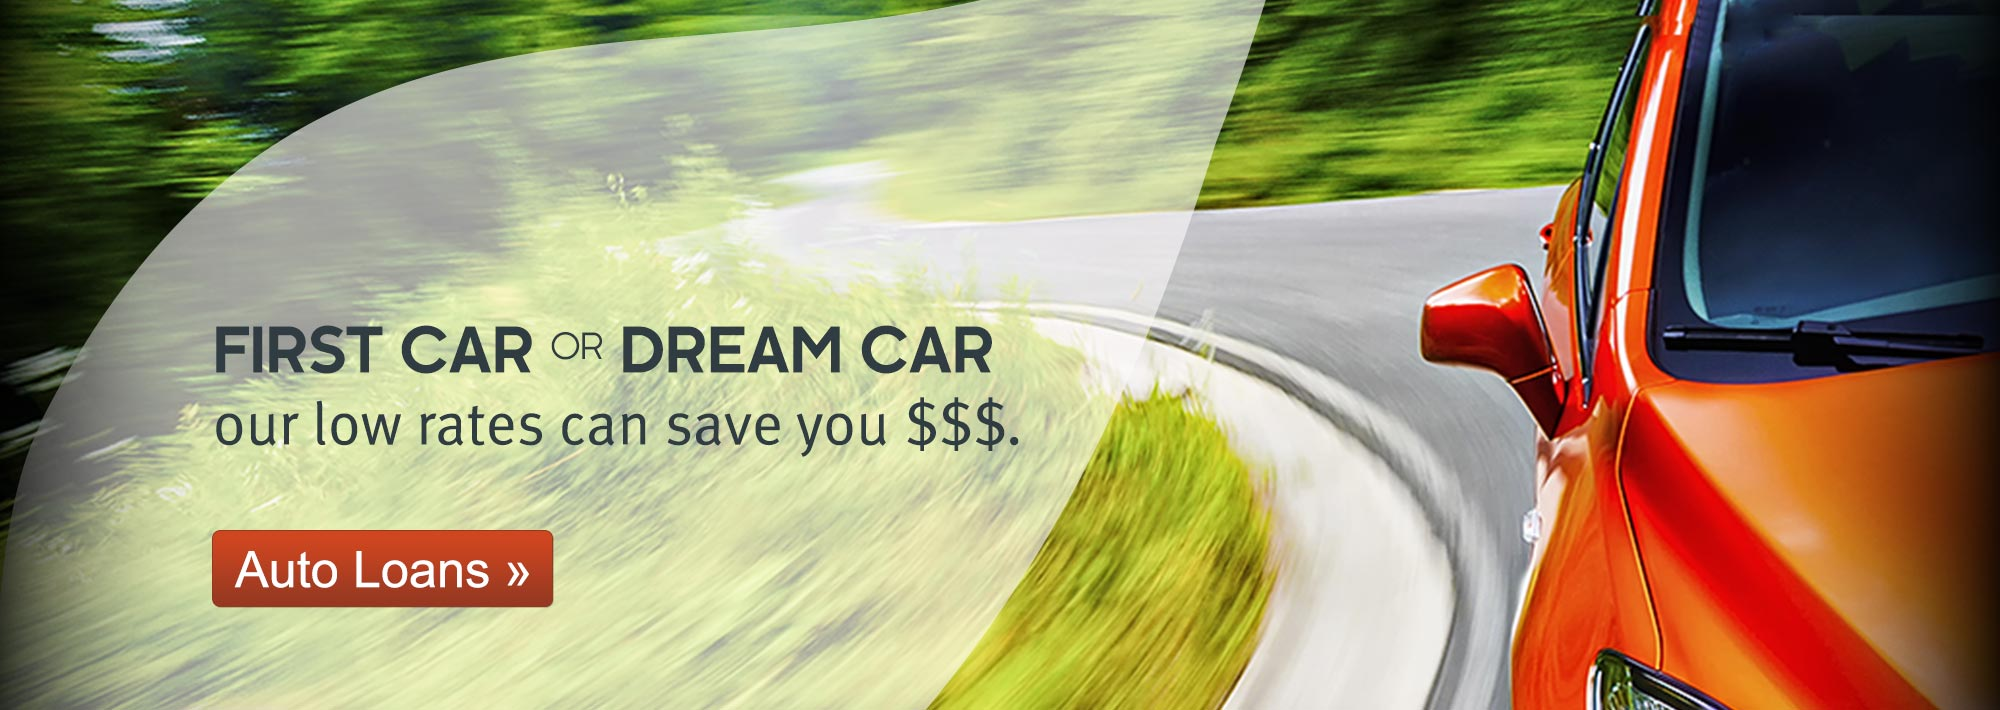 First Car or Dream Car…our low rates can save you money!